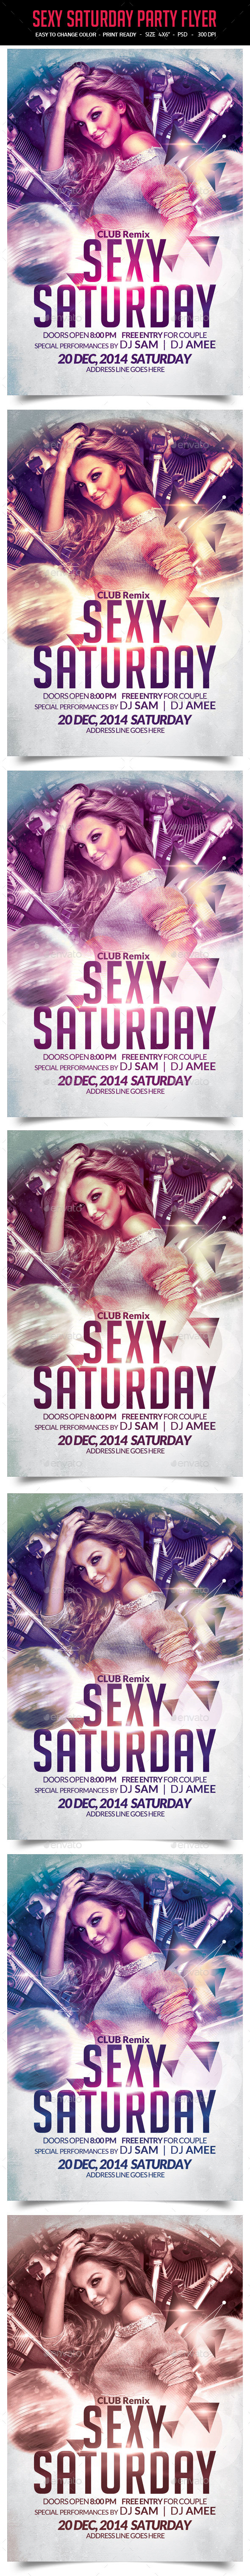 Sexy Saturday Party Flyer